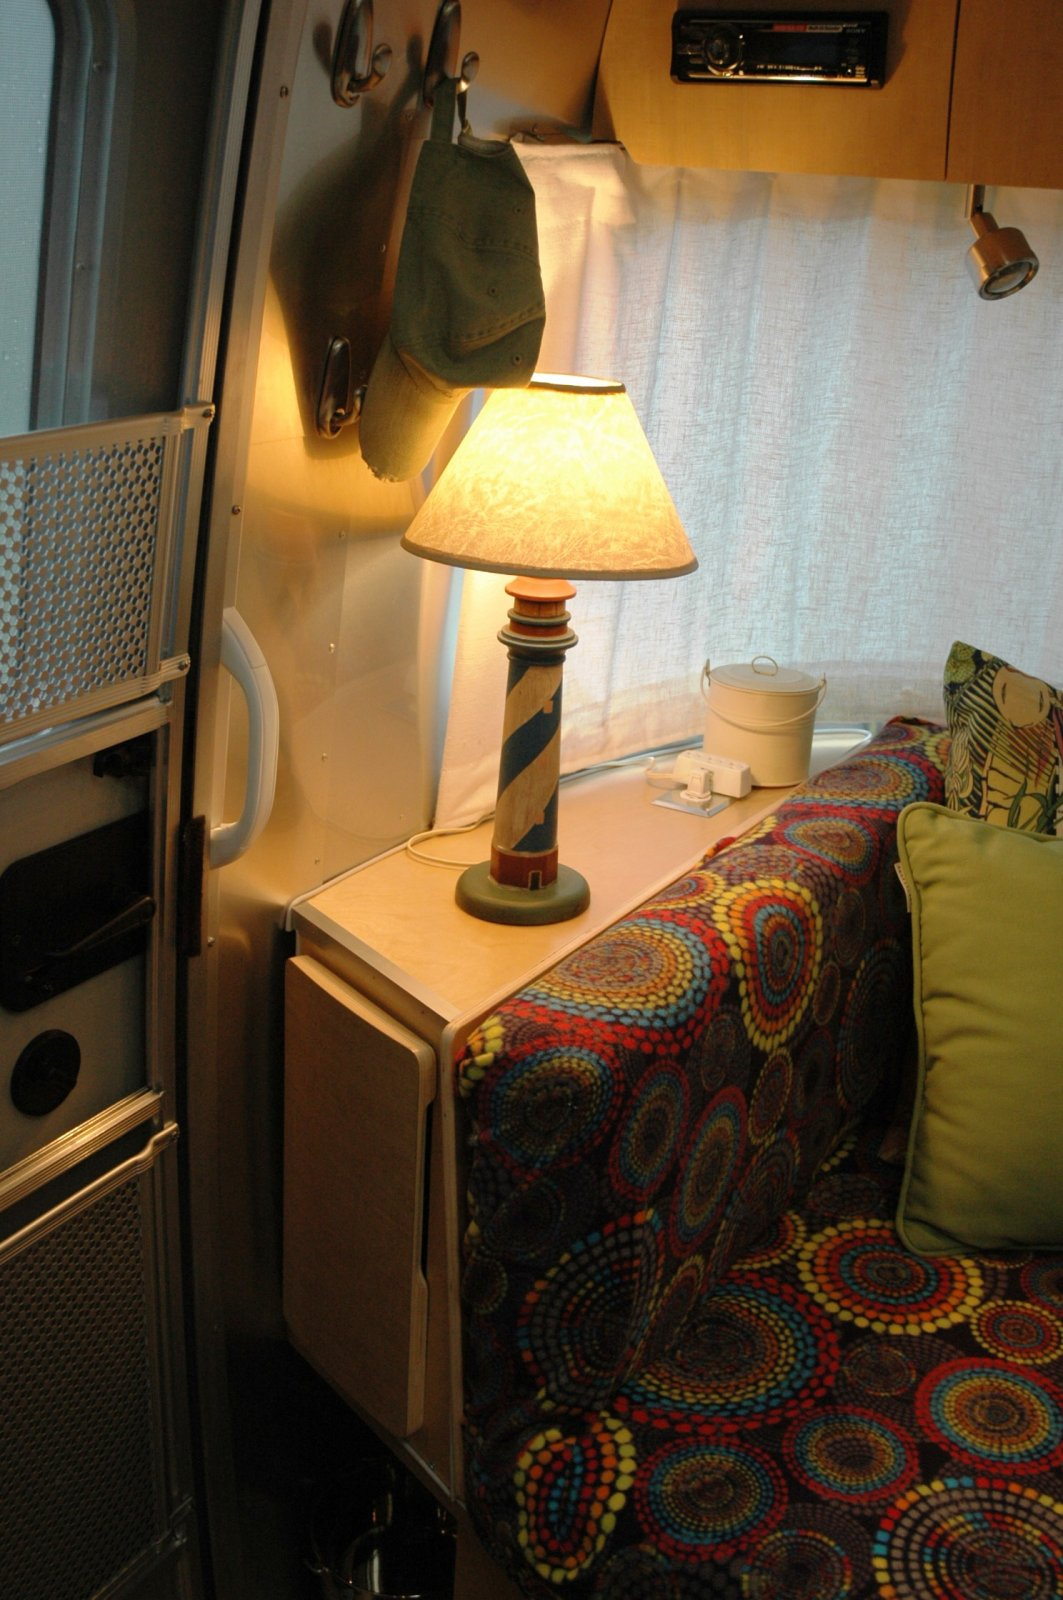 Click image for larger version  Name:airstream modification 005.jpg Views:58 Size:262.8 KB ID:255613